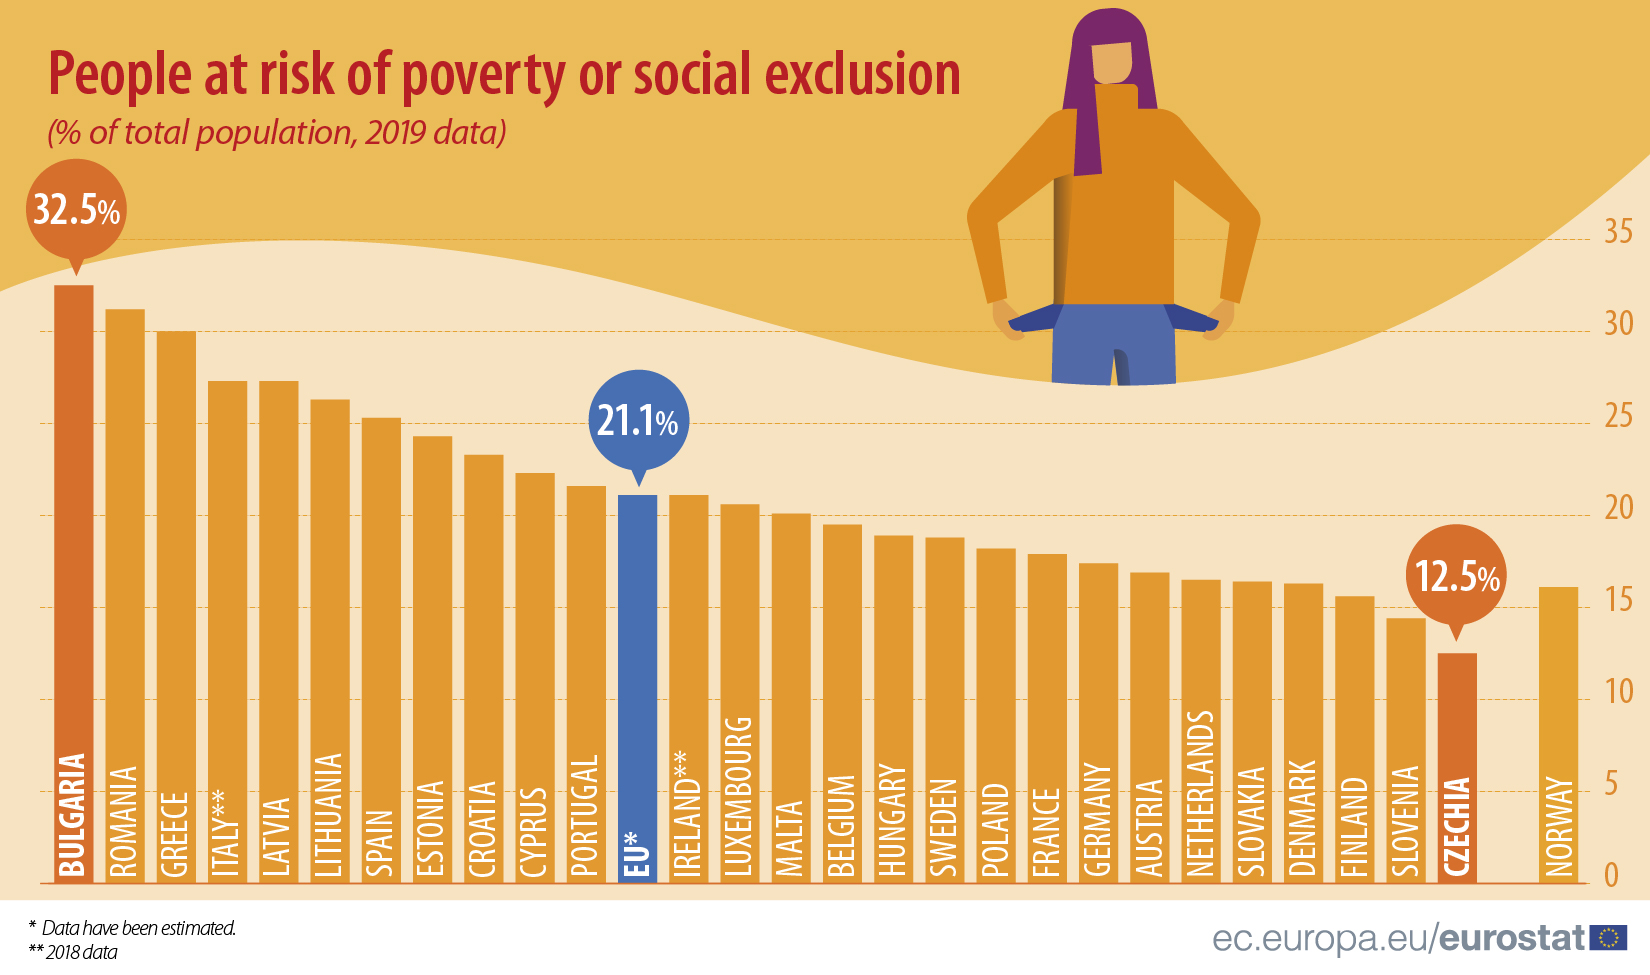 People at risk of poverty or social exclusion (2019)